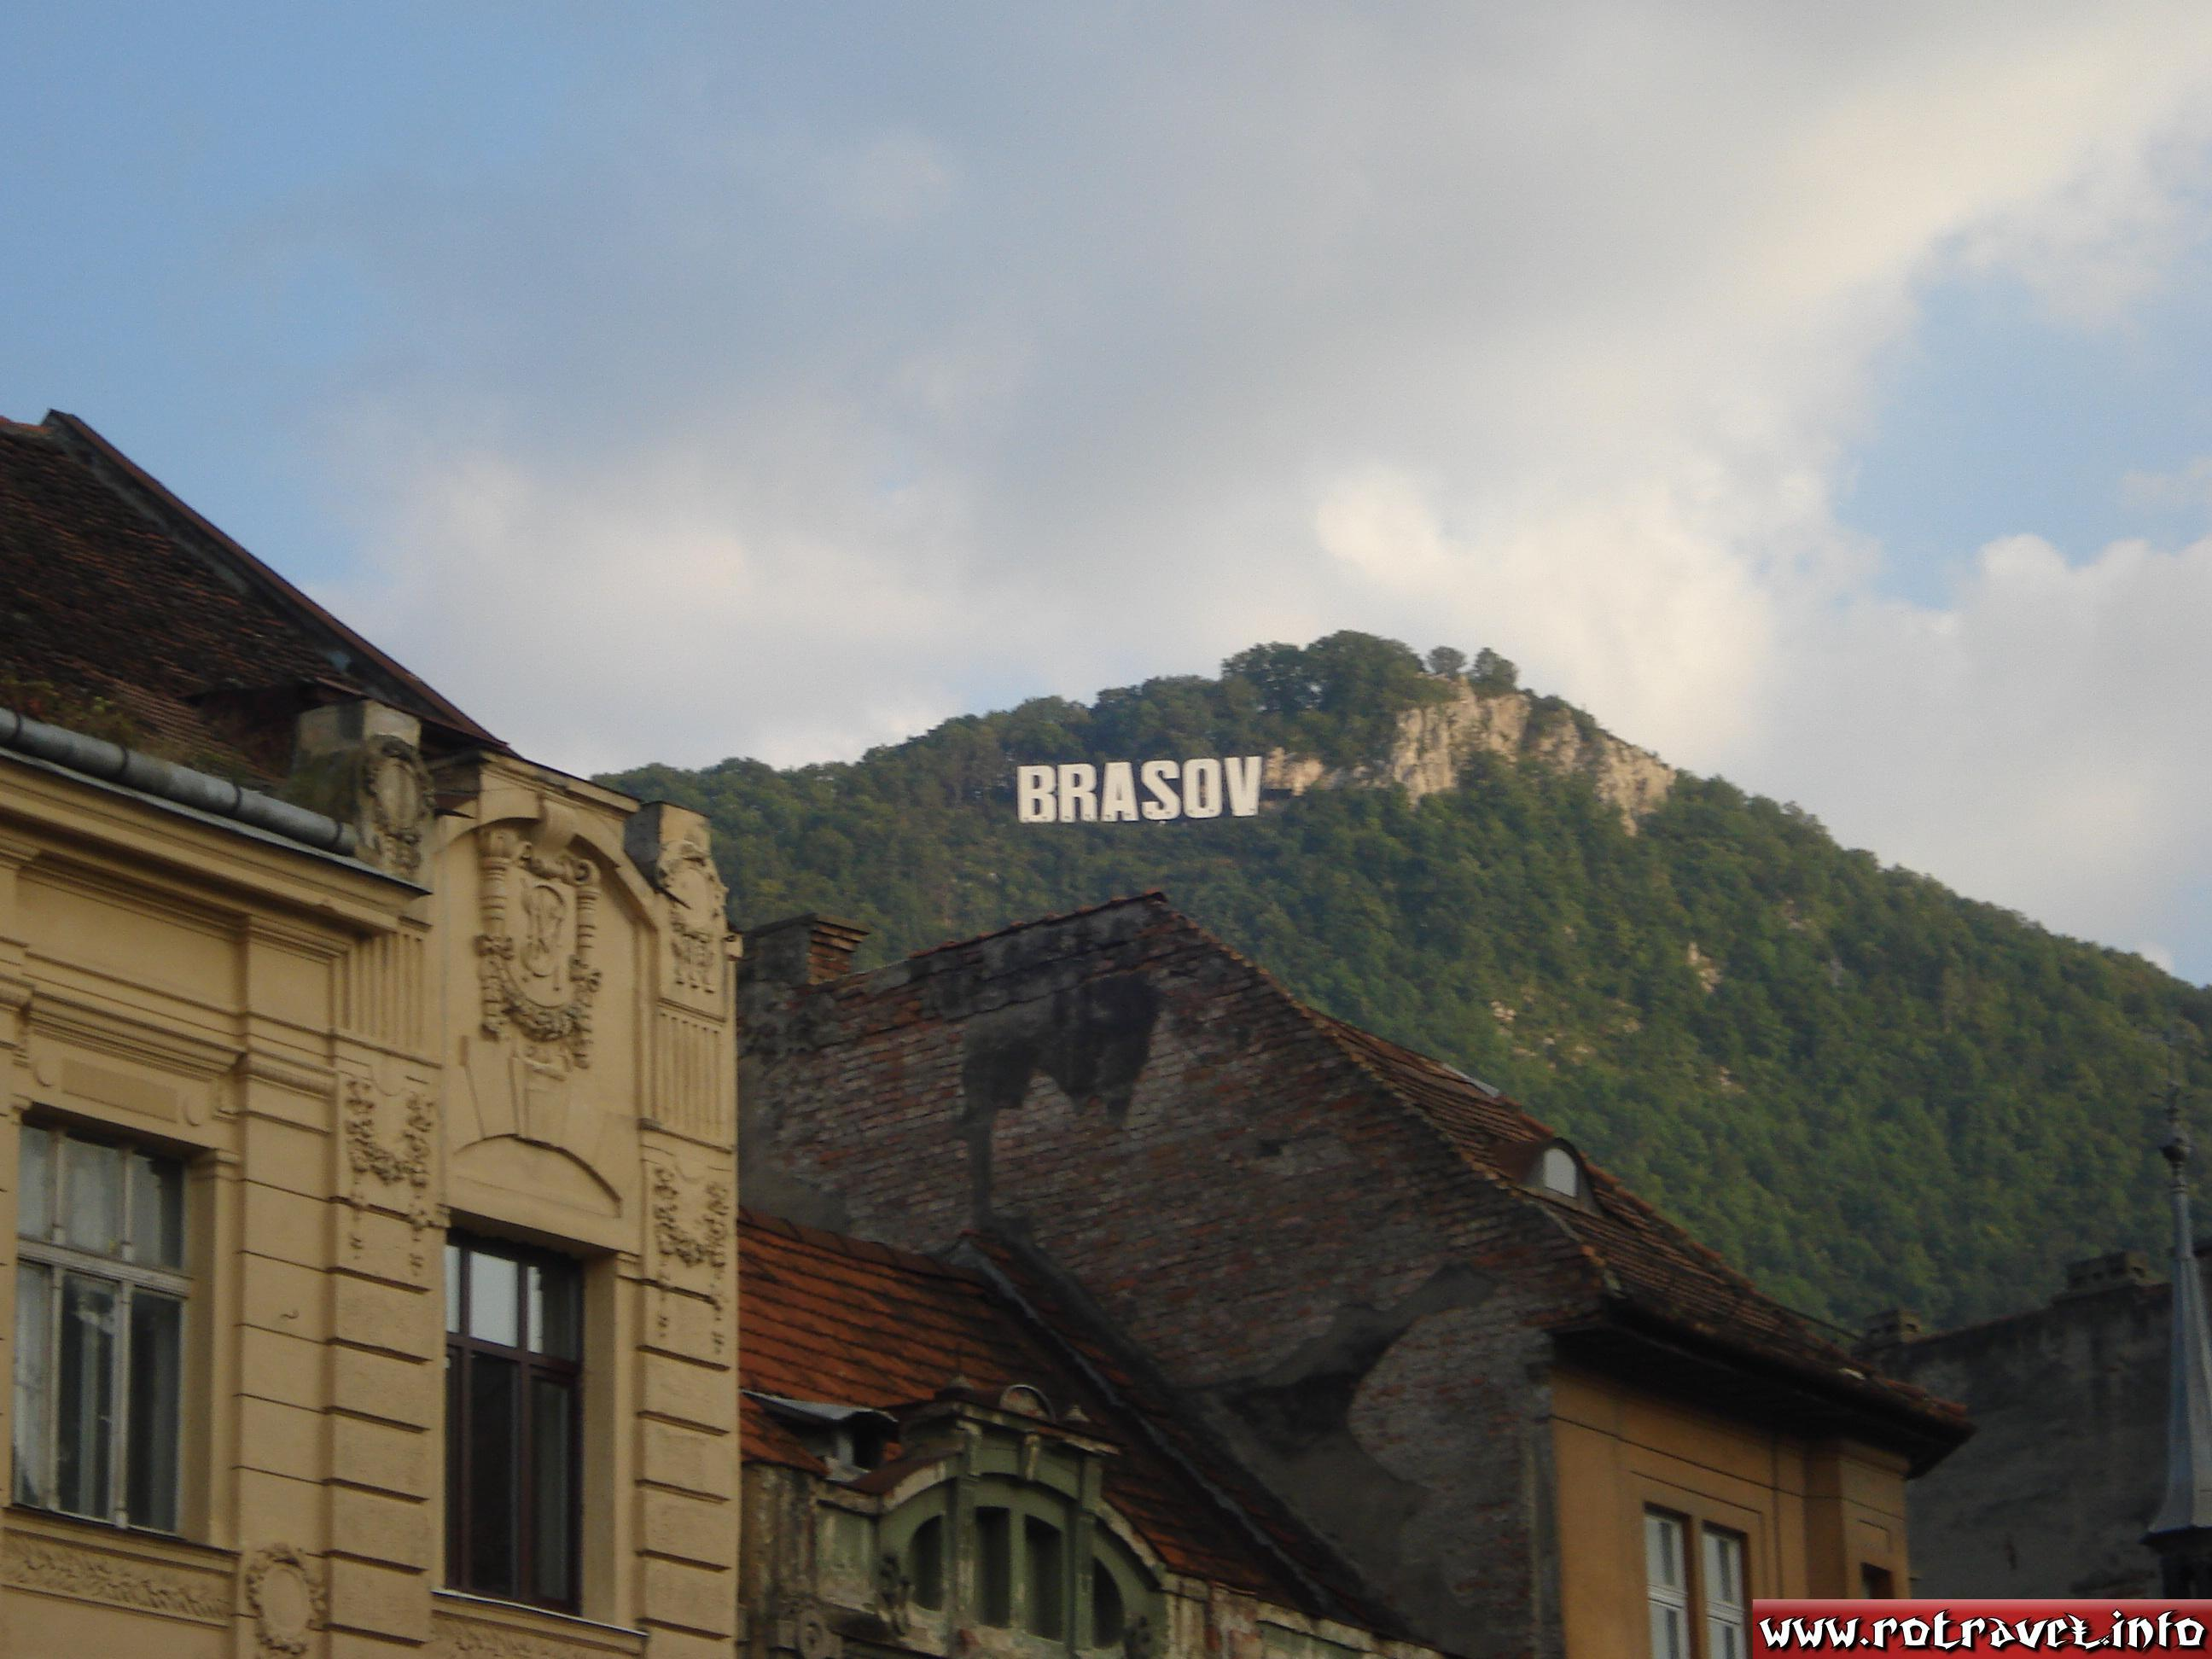 The Hollywood-like sign on top of Mt. Tâmpa